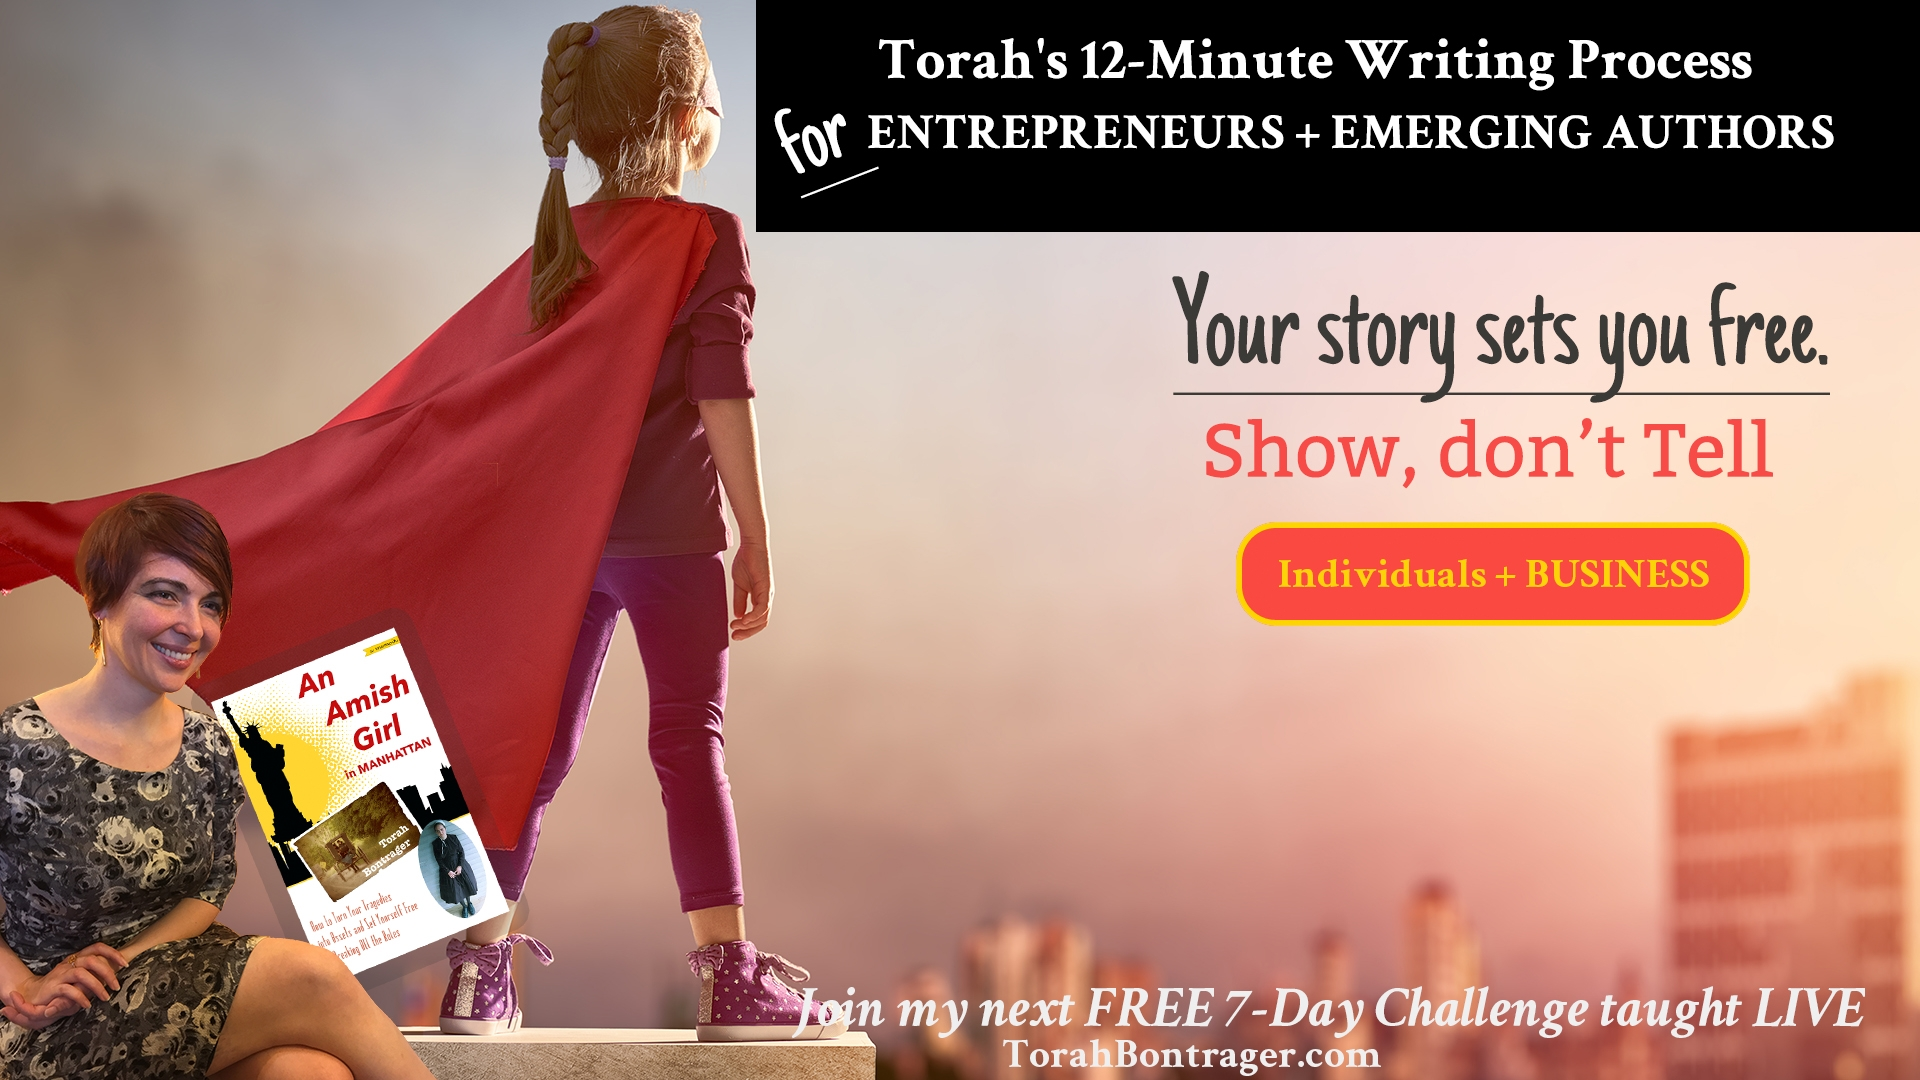 7-Day Challenge to #EmbraceYourStory [FREE] using The 12-Minute Writing Process TM